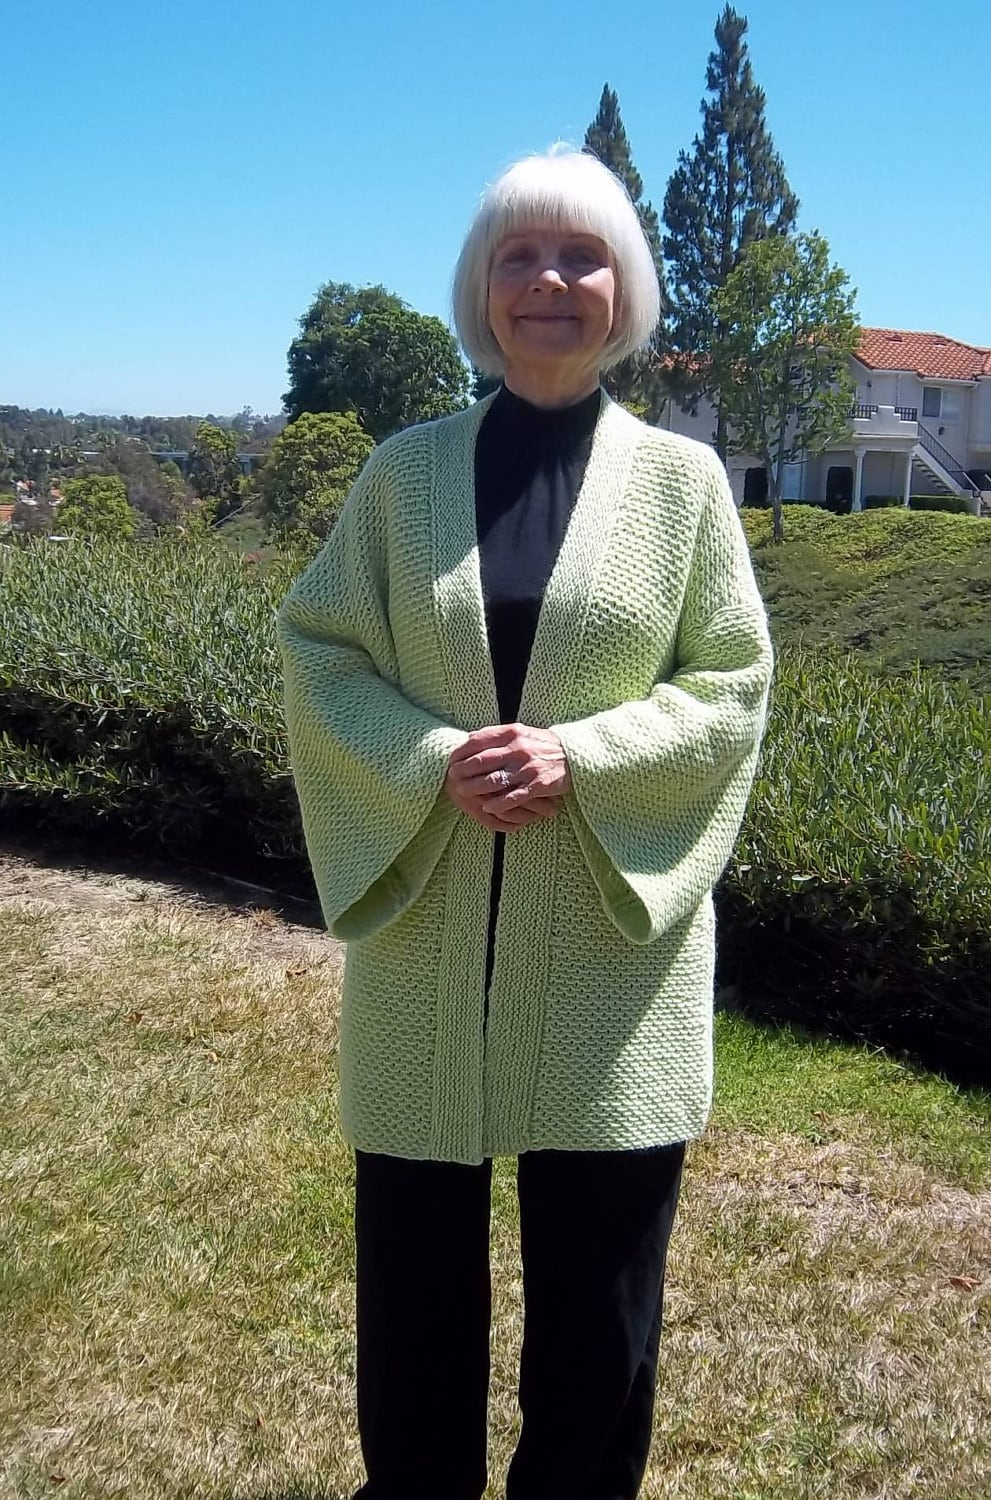 Knitting Pattern For Kimono Sweater : PDF Download Knit Pattern for the Easy Ripple Stitch Kimono Sweater/Jacket - ...